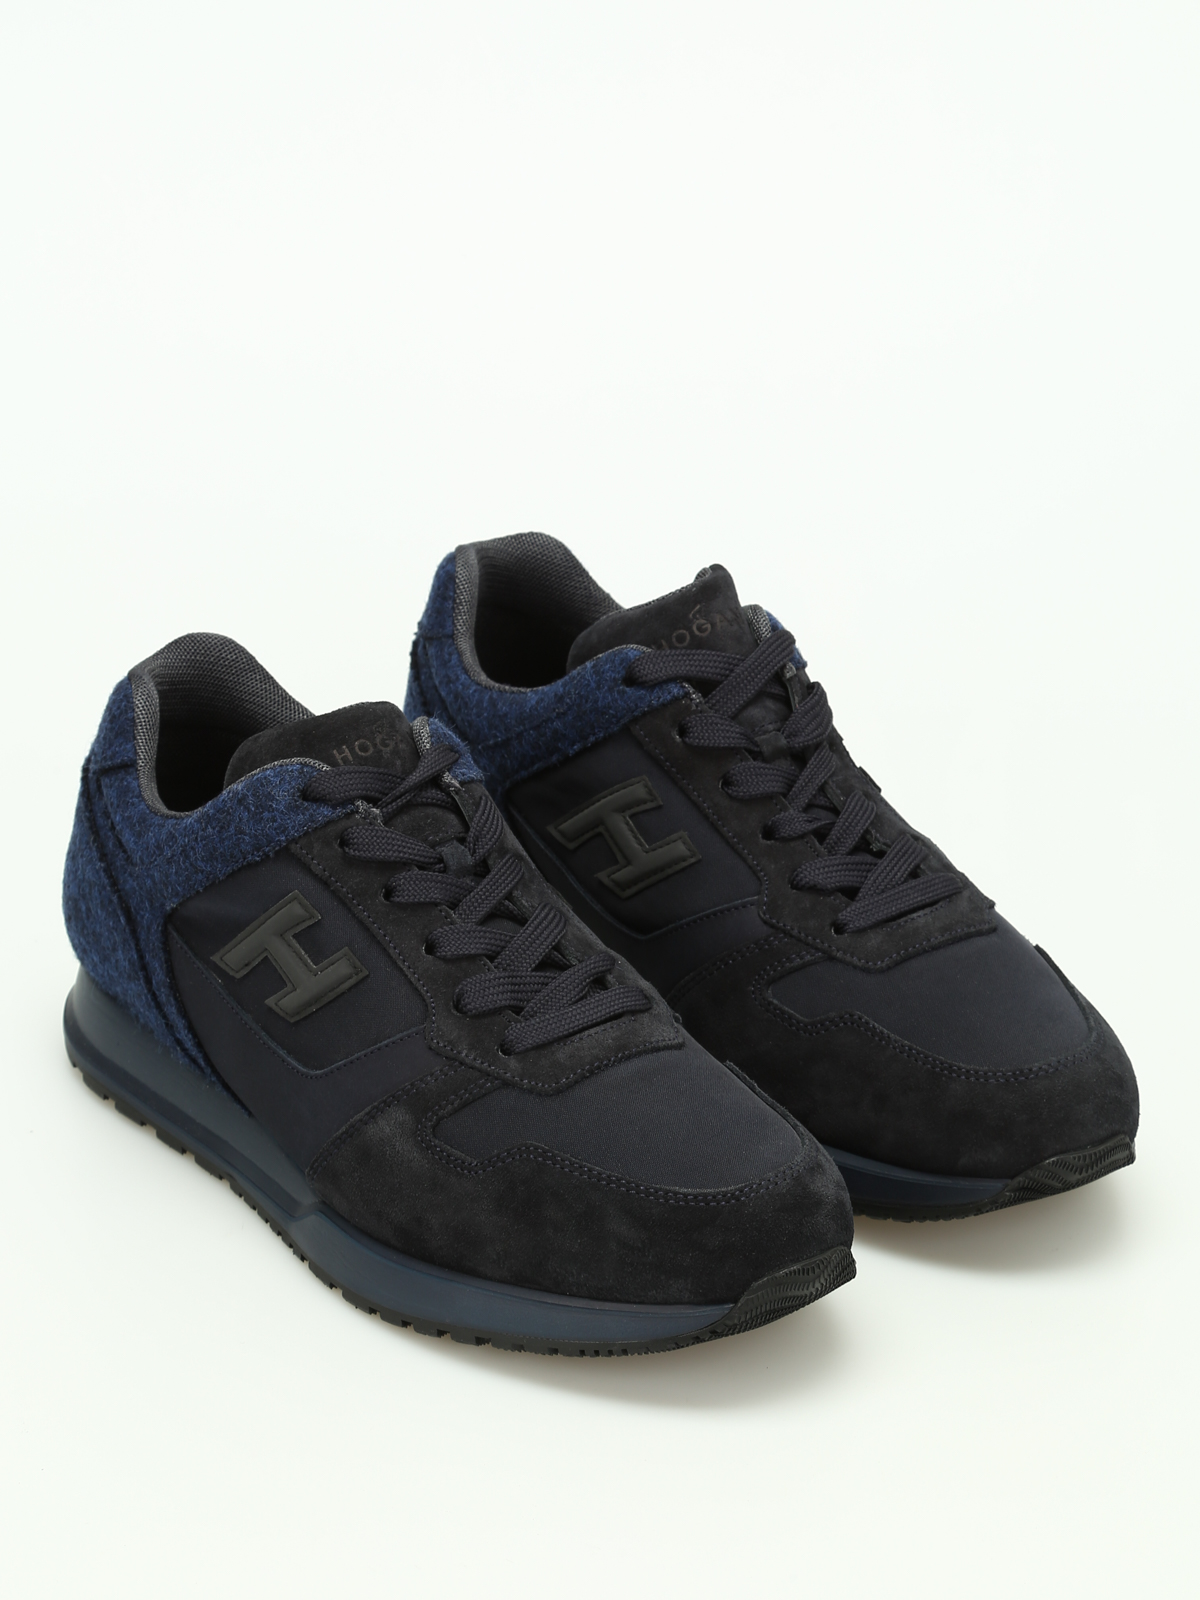 Hogan - H321 felt and suede sneakers